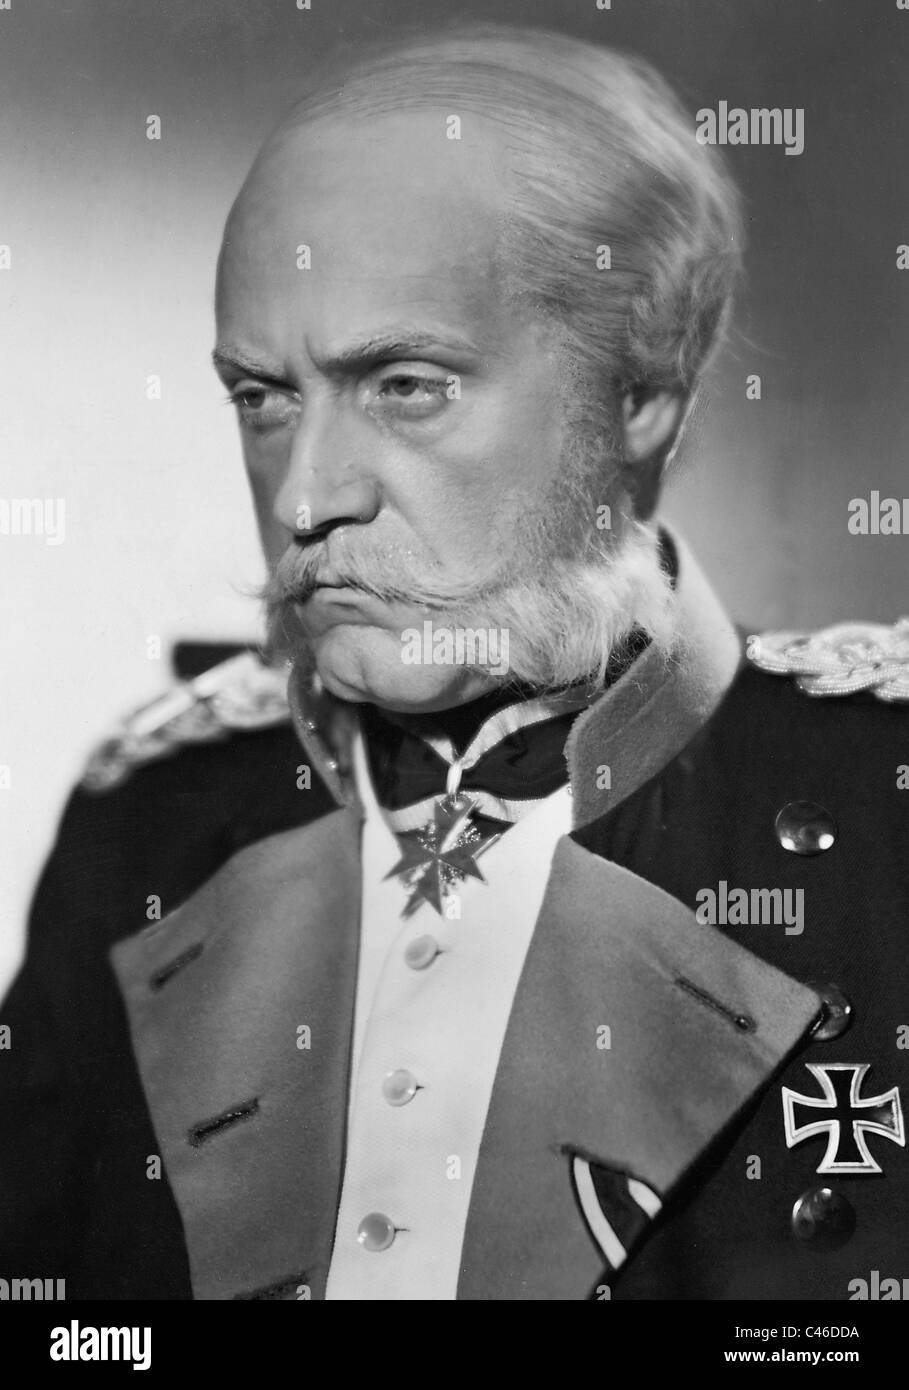 Willy Fritsch in 'A Prussian Love Story', 1938 - Stock Image